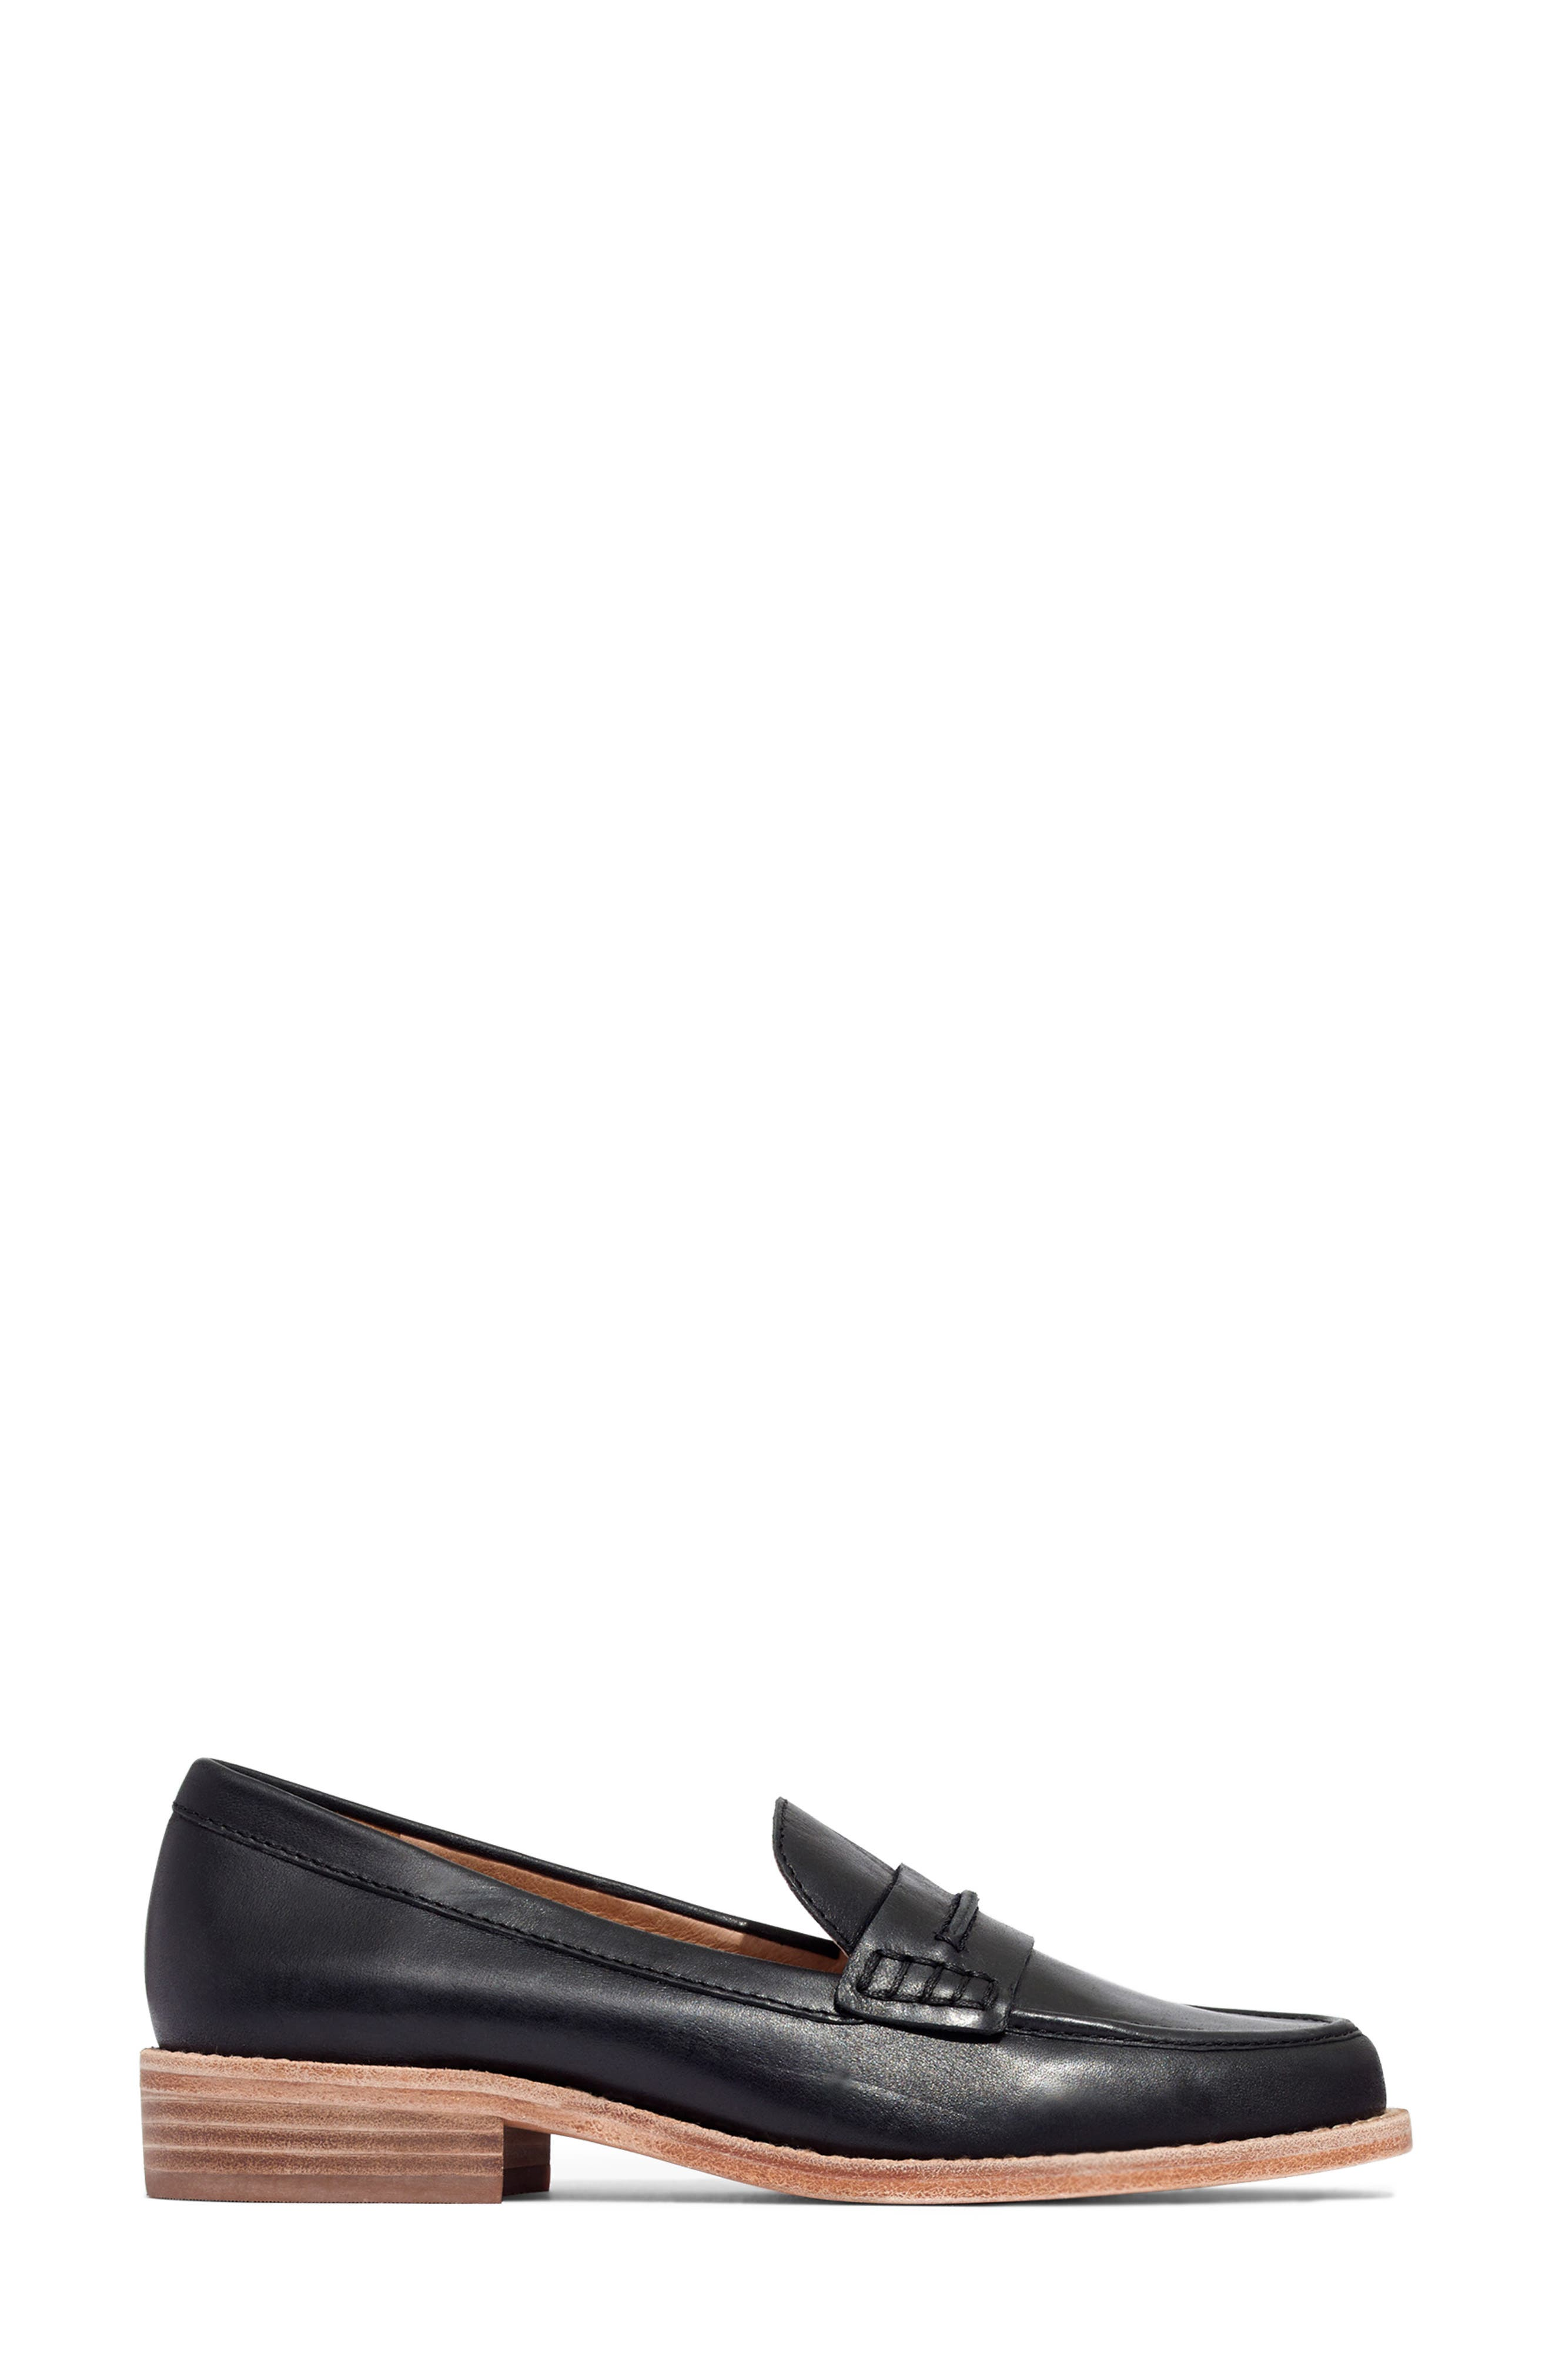 MADEWELL, The Elinor Loafer, Alternate thumbnail 3, color, BLACK LEATHER